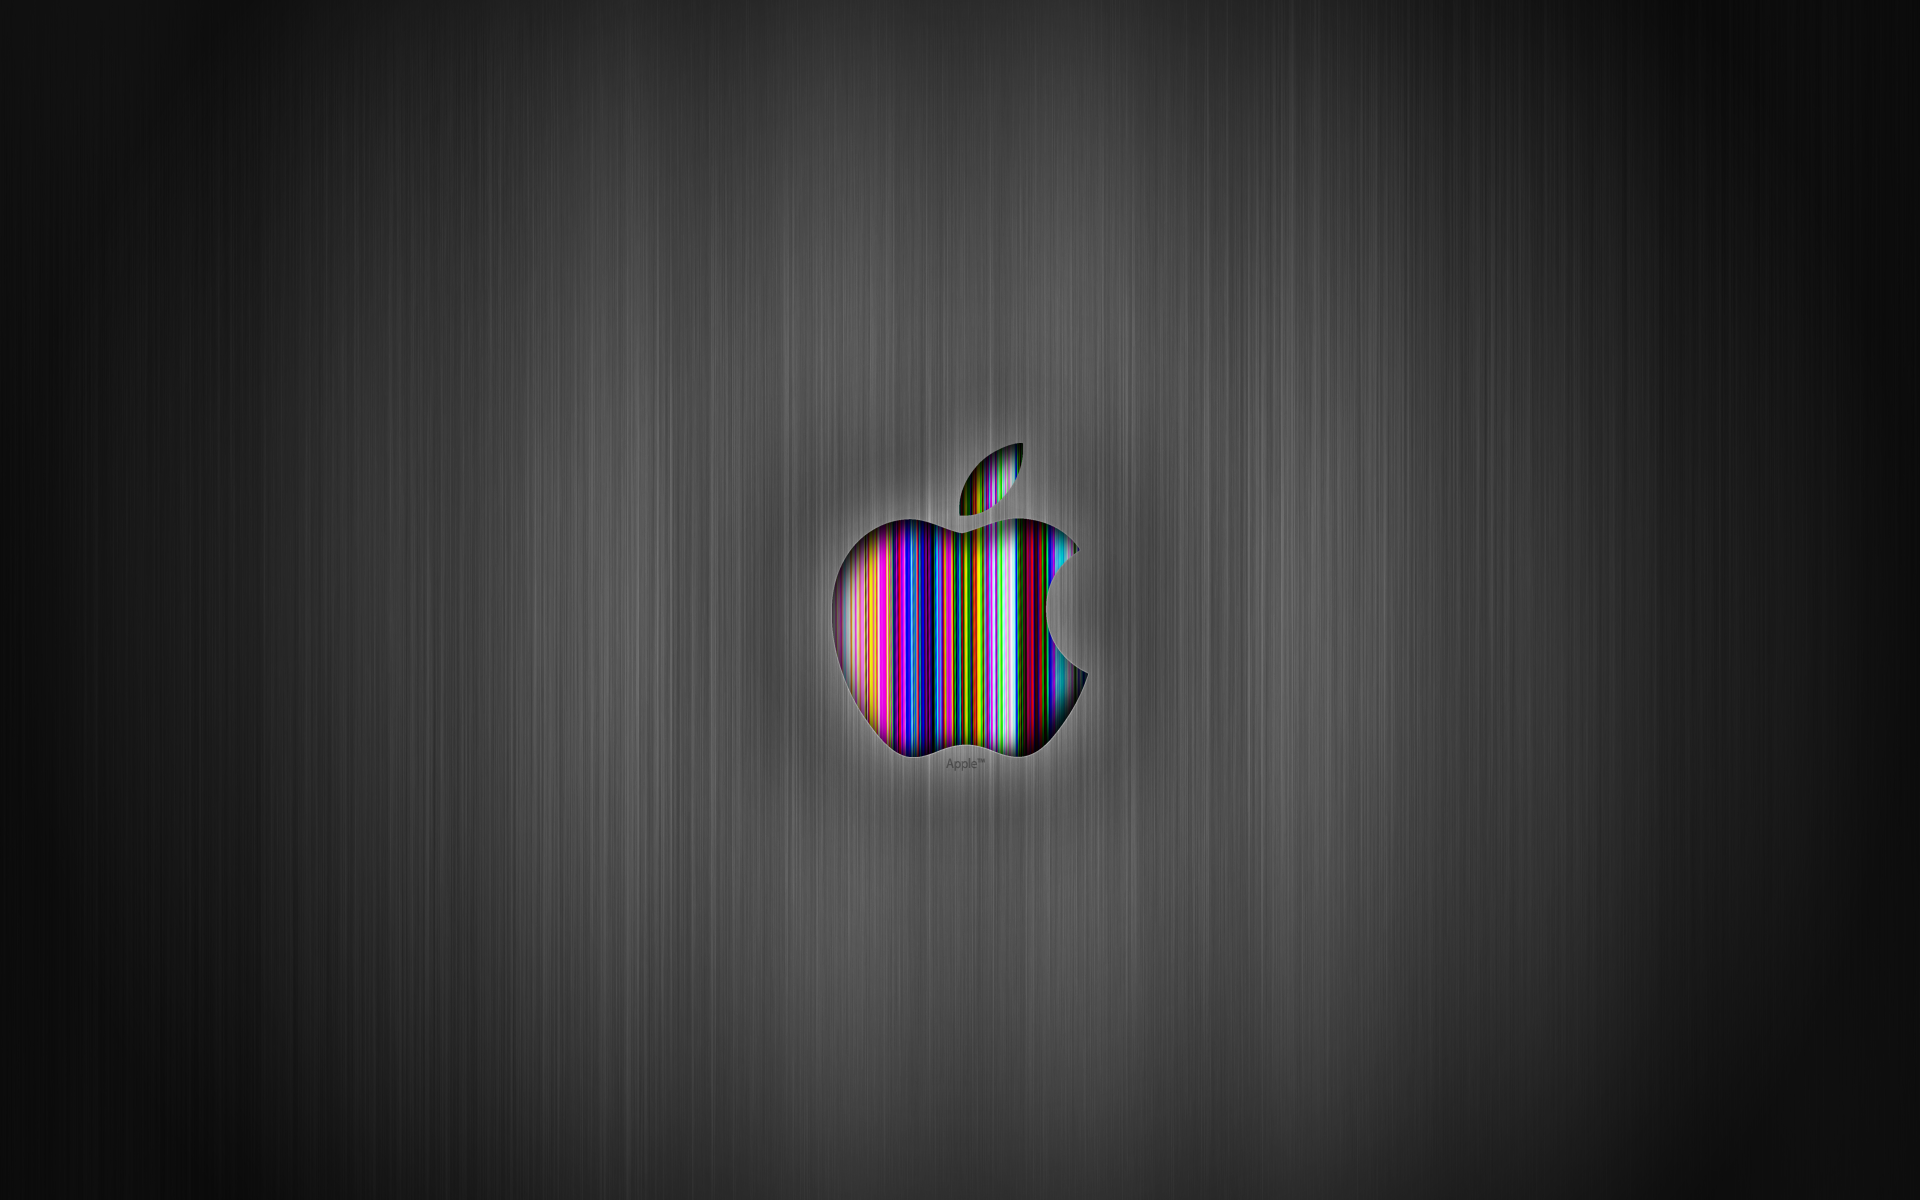 Hd Wallpapers 1080p Mac Wallpaper Cave Mac Wallpaper Laptop Wallpaper Apple Icon